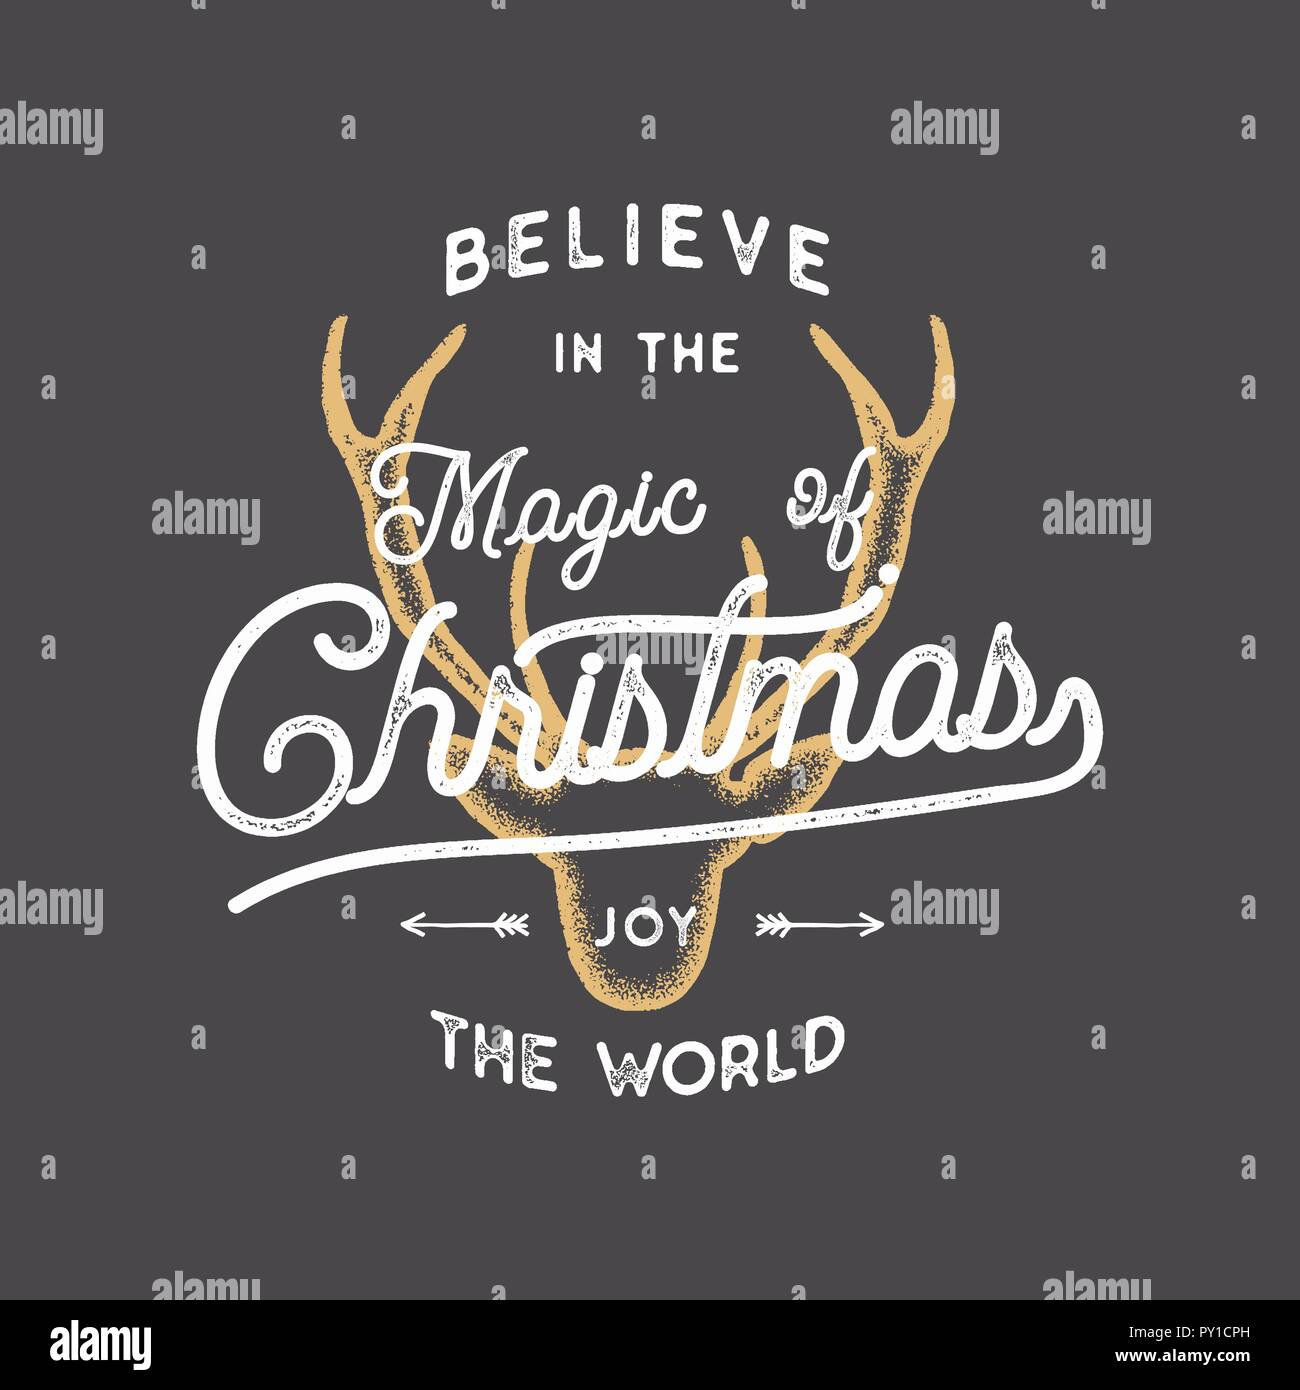 believe in the magic of xmas typography quote wish with deer head new year lettering sayings vintage labels seasonal greetings calligraphy